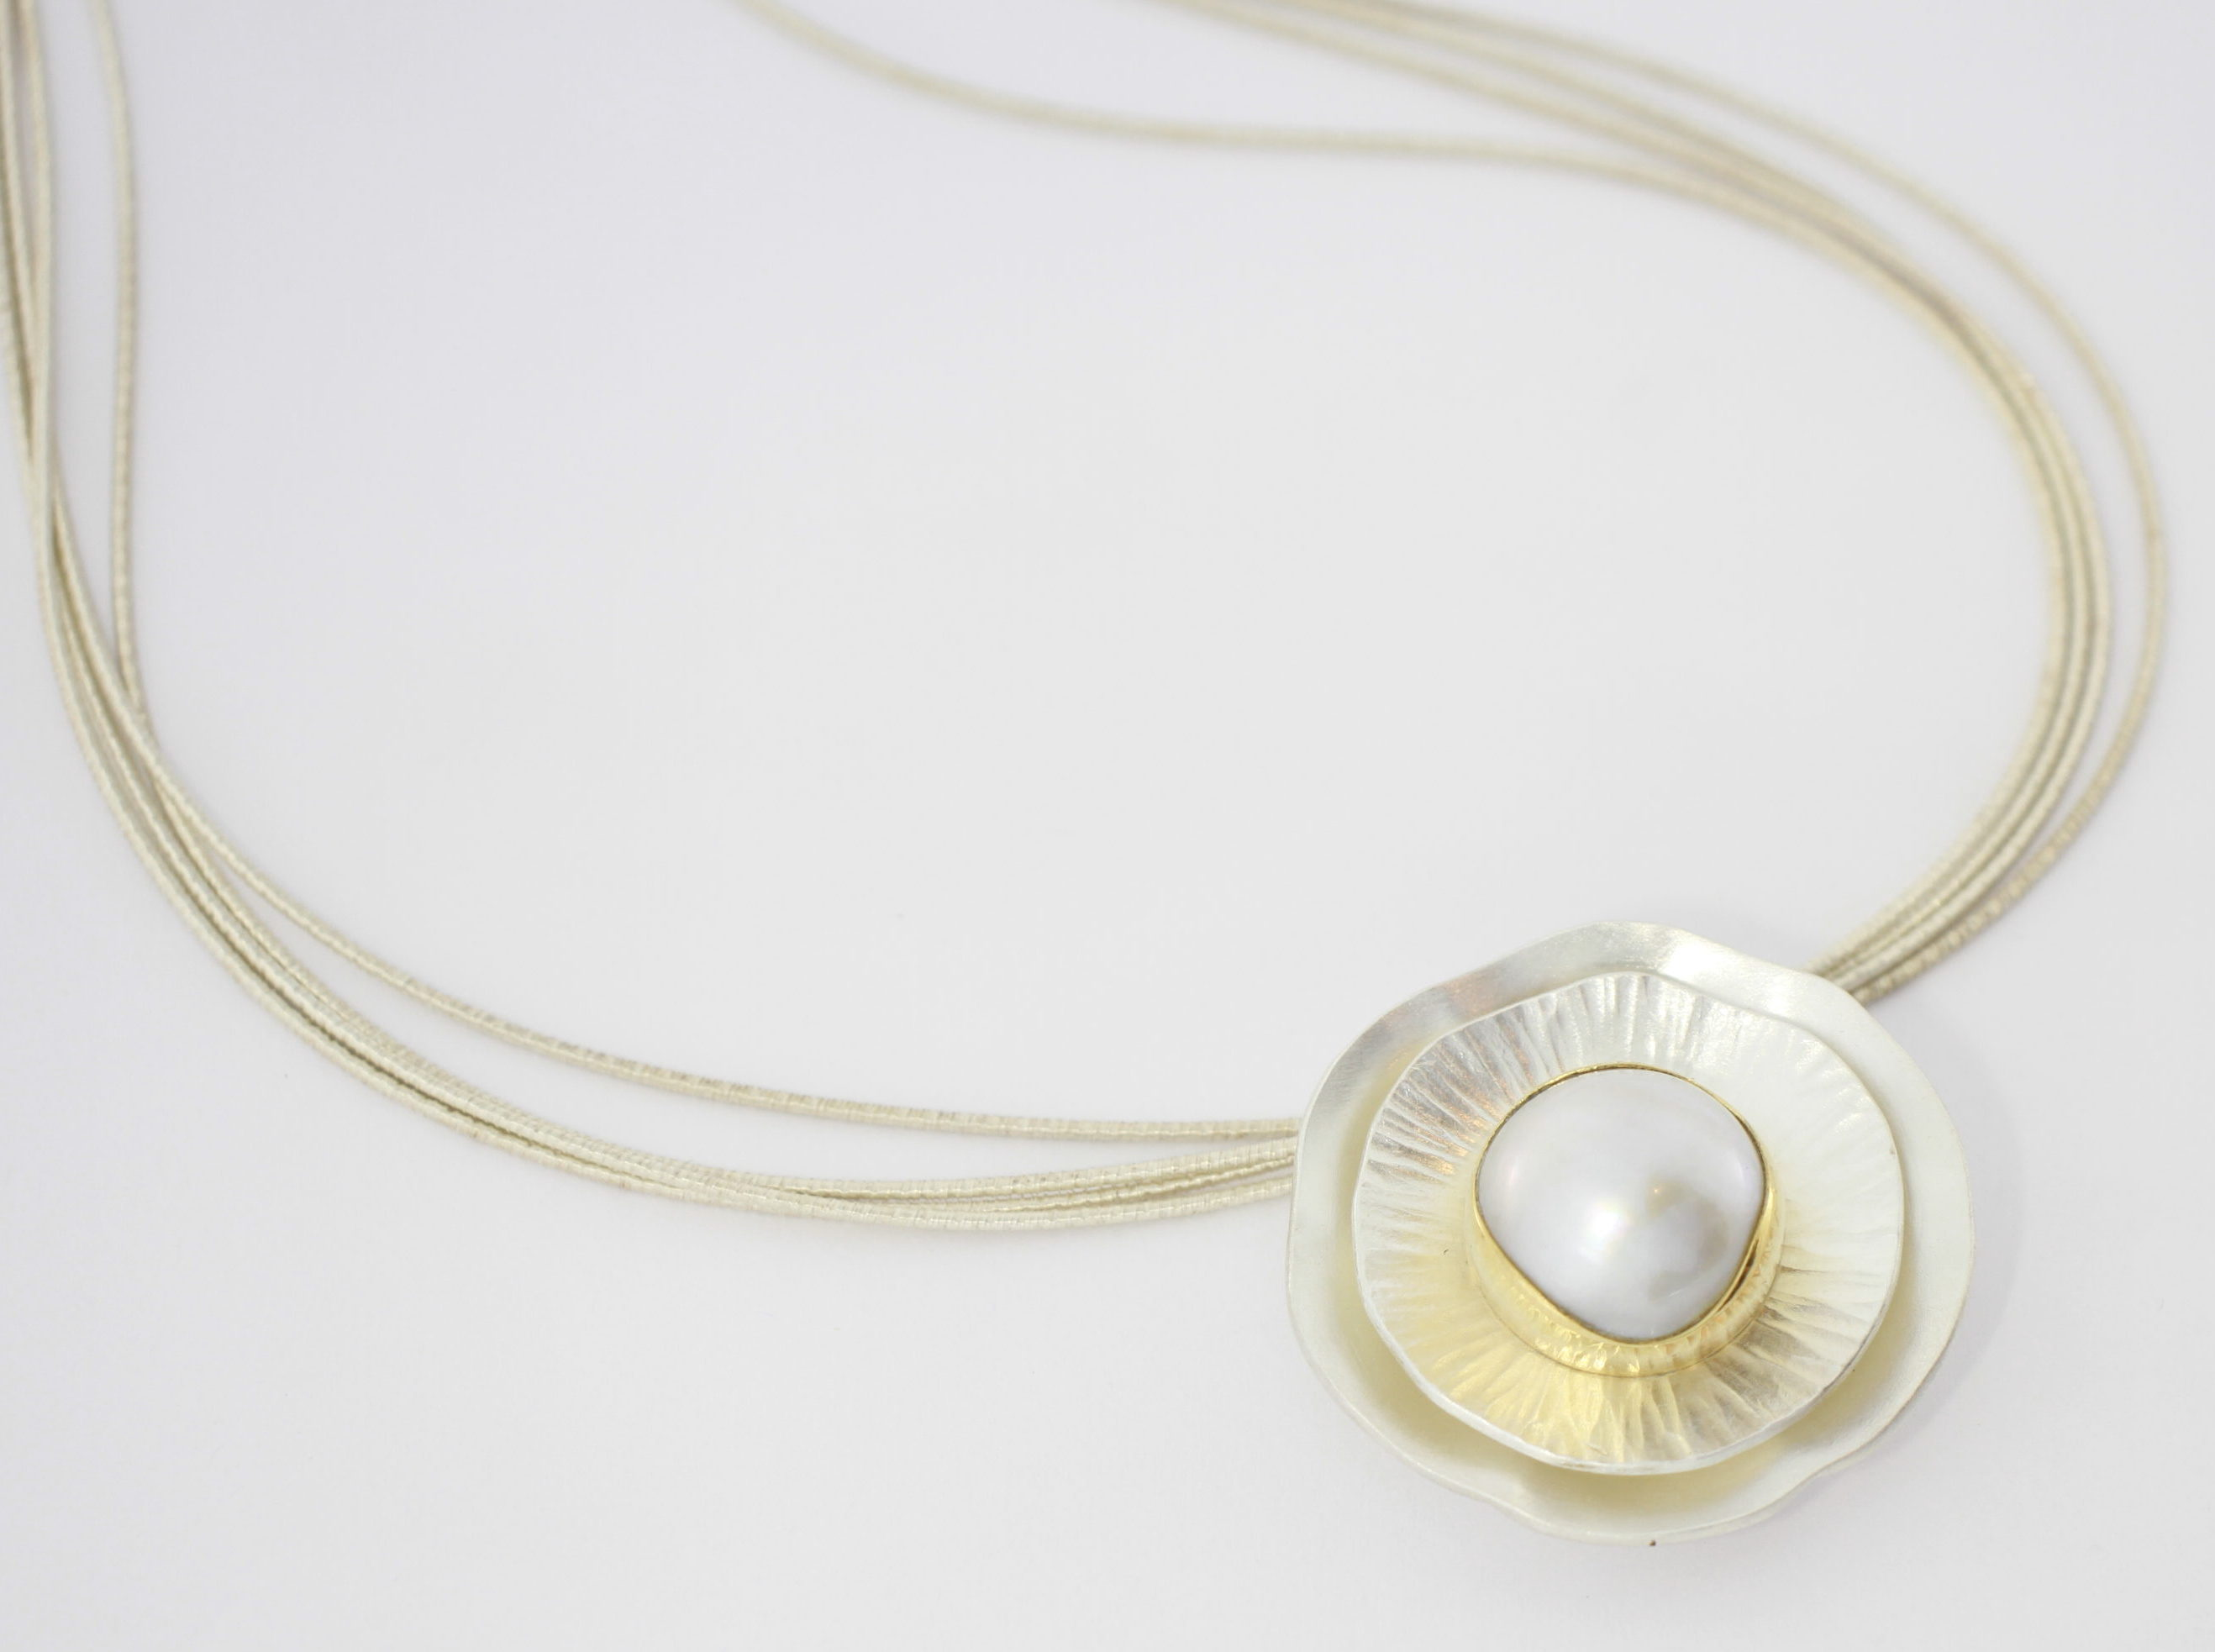 Payet Broome made pearl dish pendant